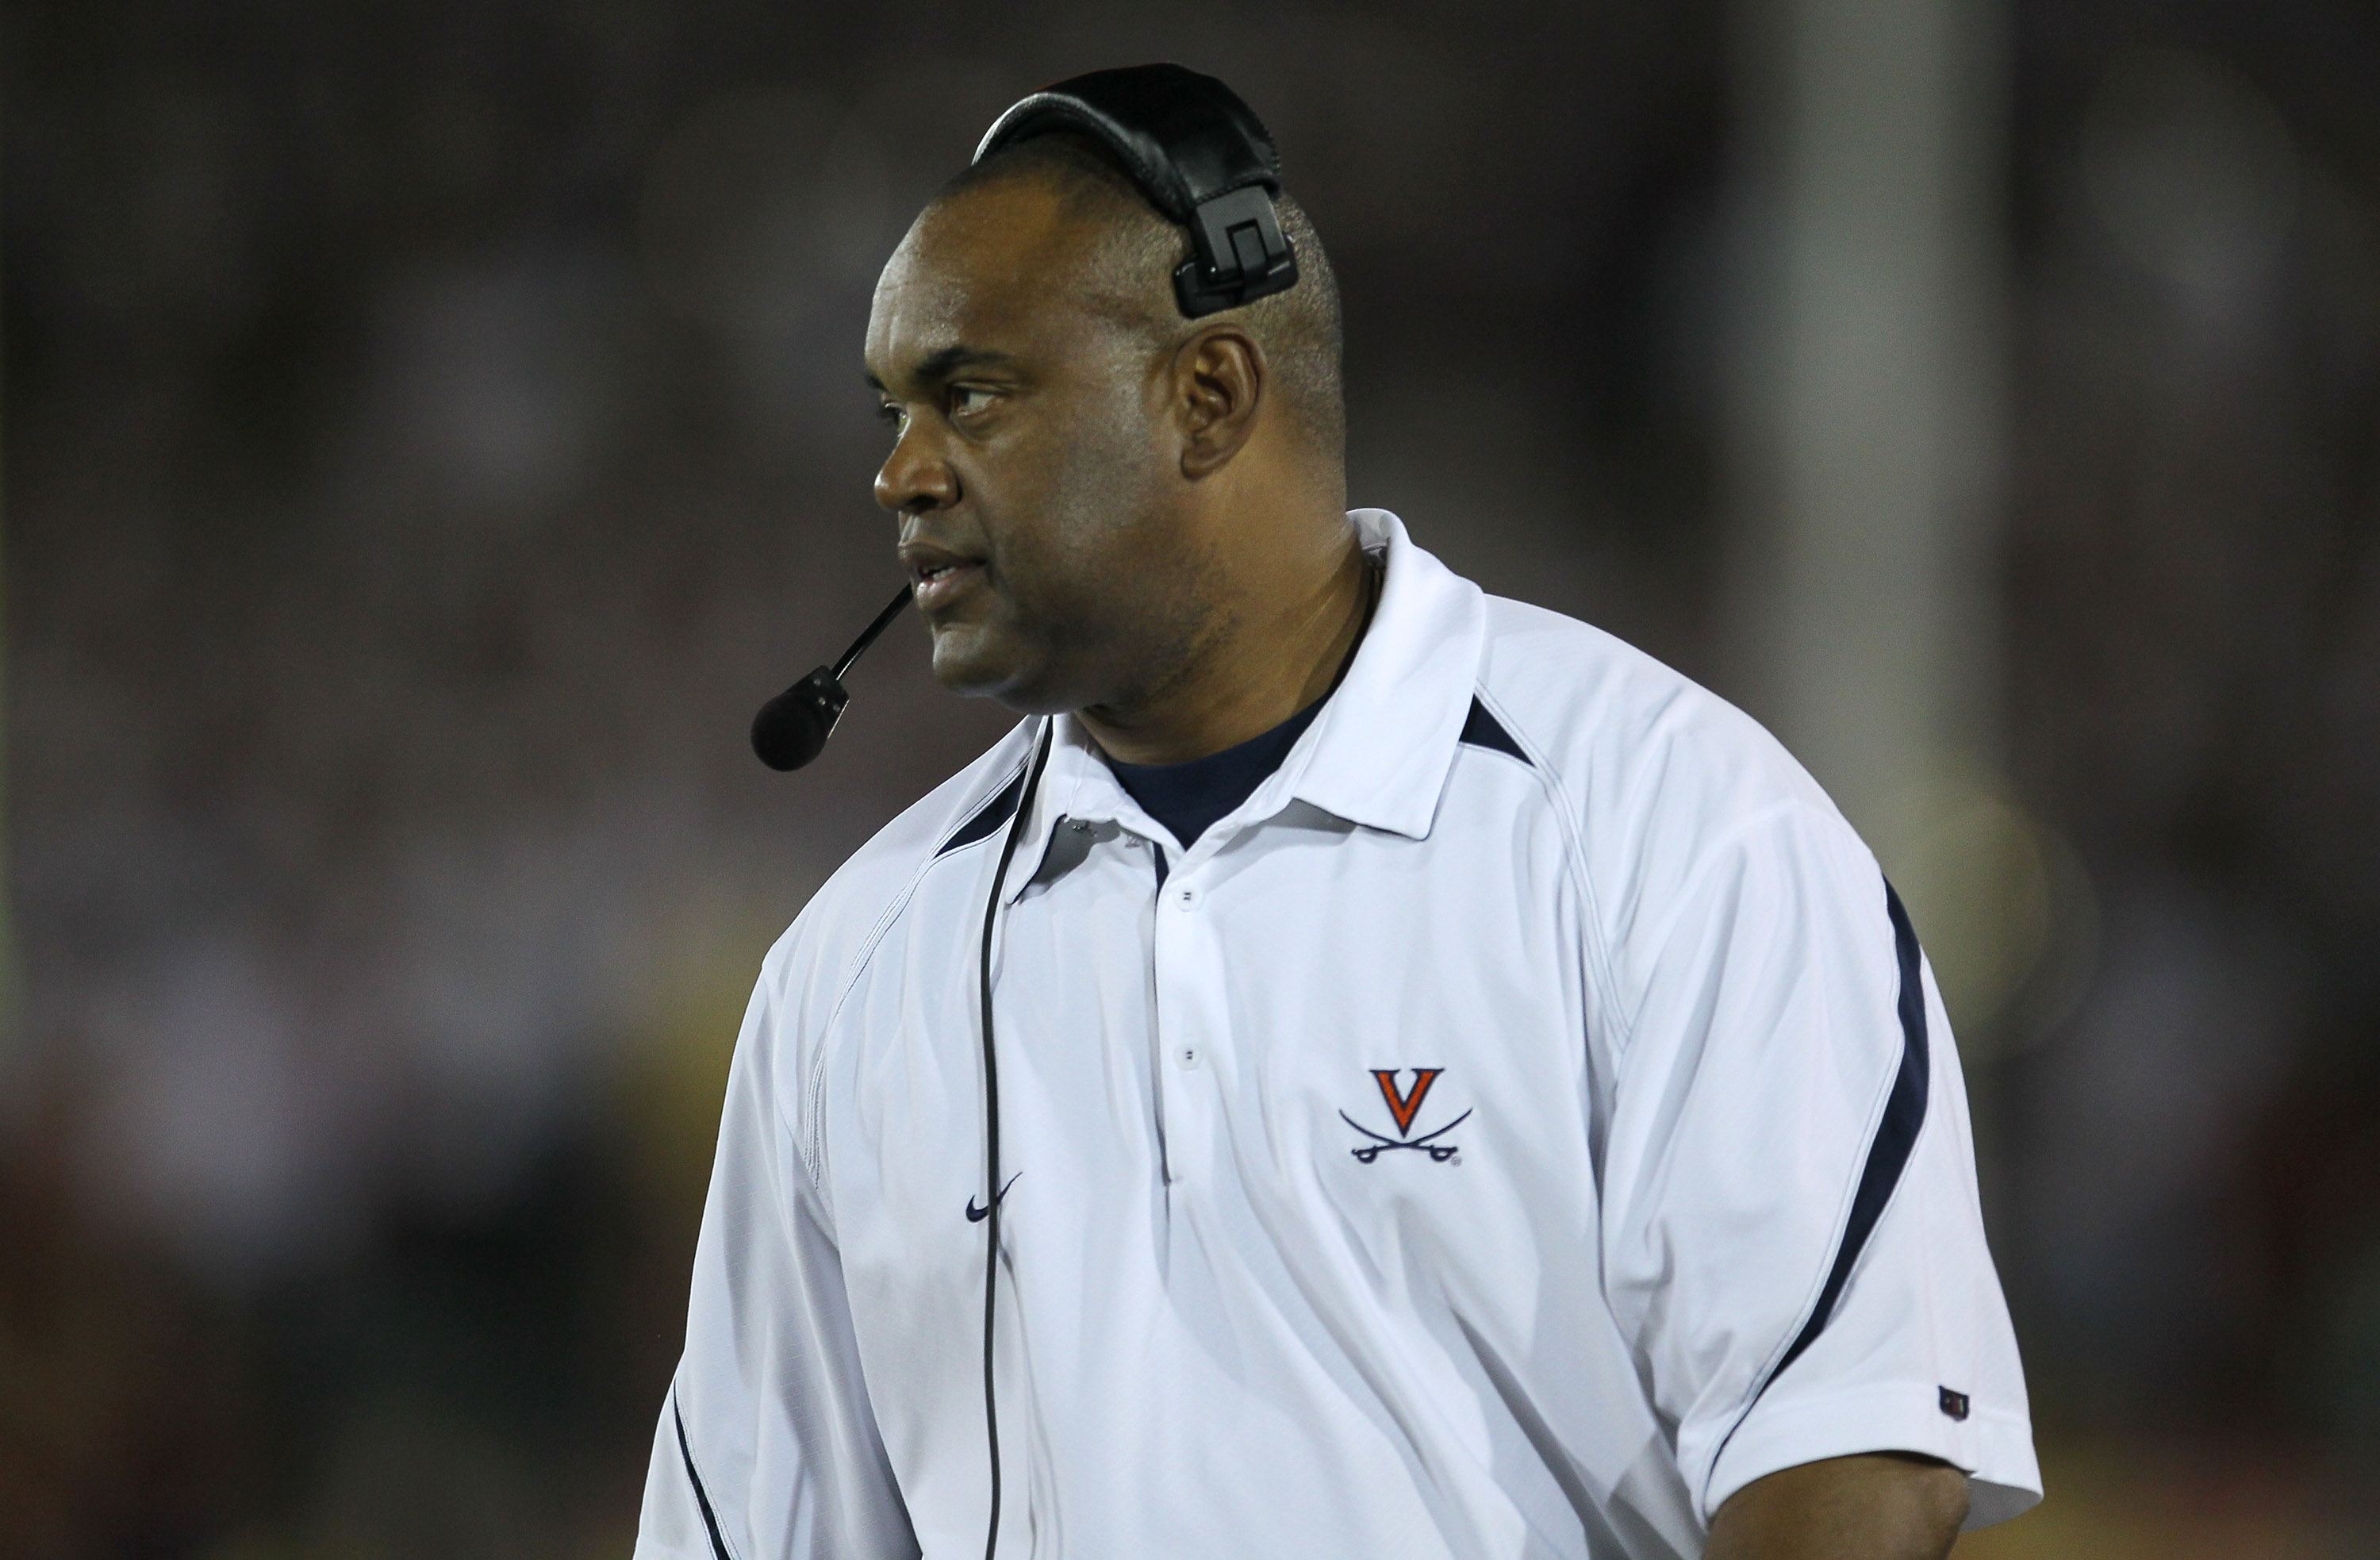 LOS ANGELES, CA - SEPTEMBER 11:  Head coach Mike London of the Virginia Cavaliers on the sidelines during the game against the USC Trojans at Los Angeles Memorial Coliseum on September 11, 2010 in Los Angeles, California. USC won 17-14.  (Photo by Stephen